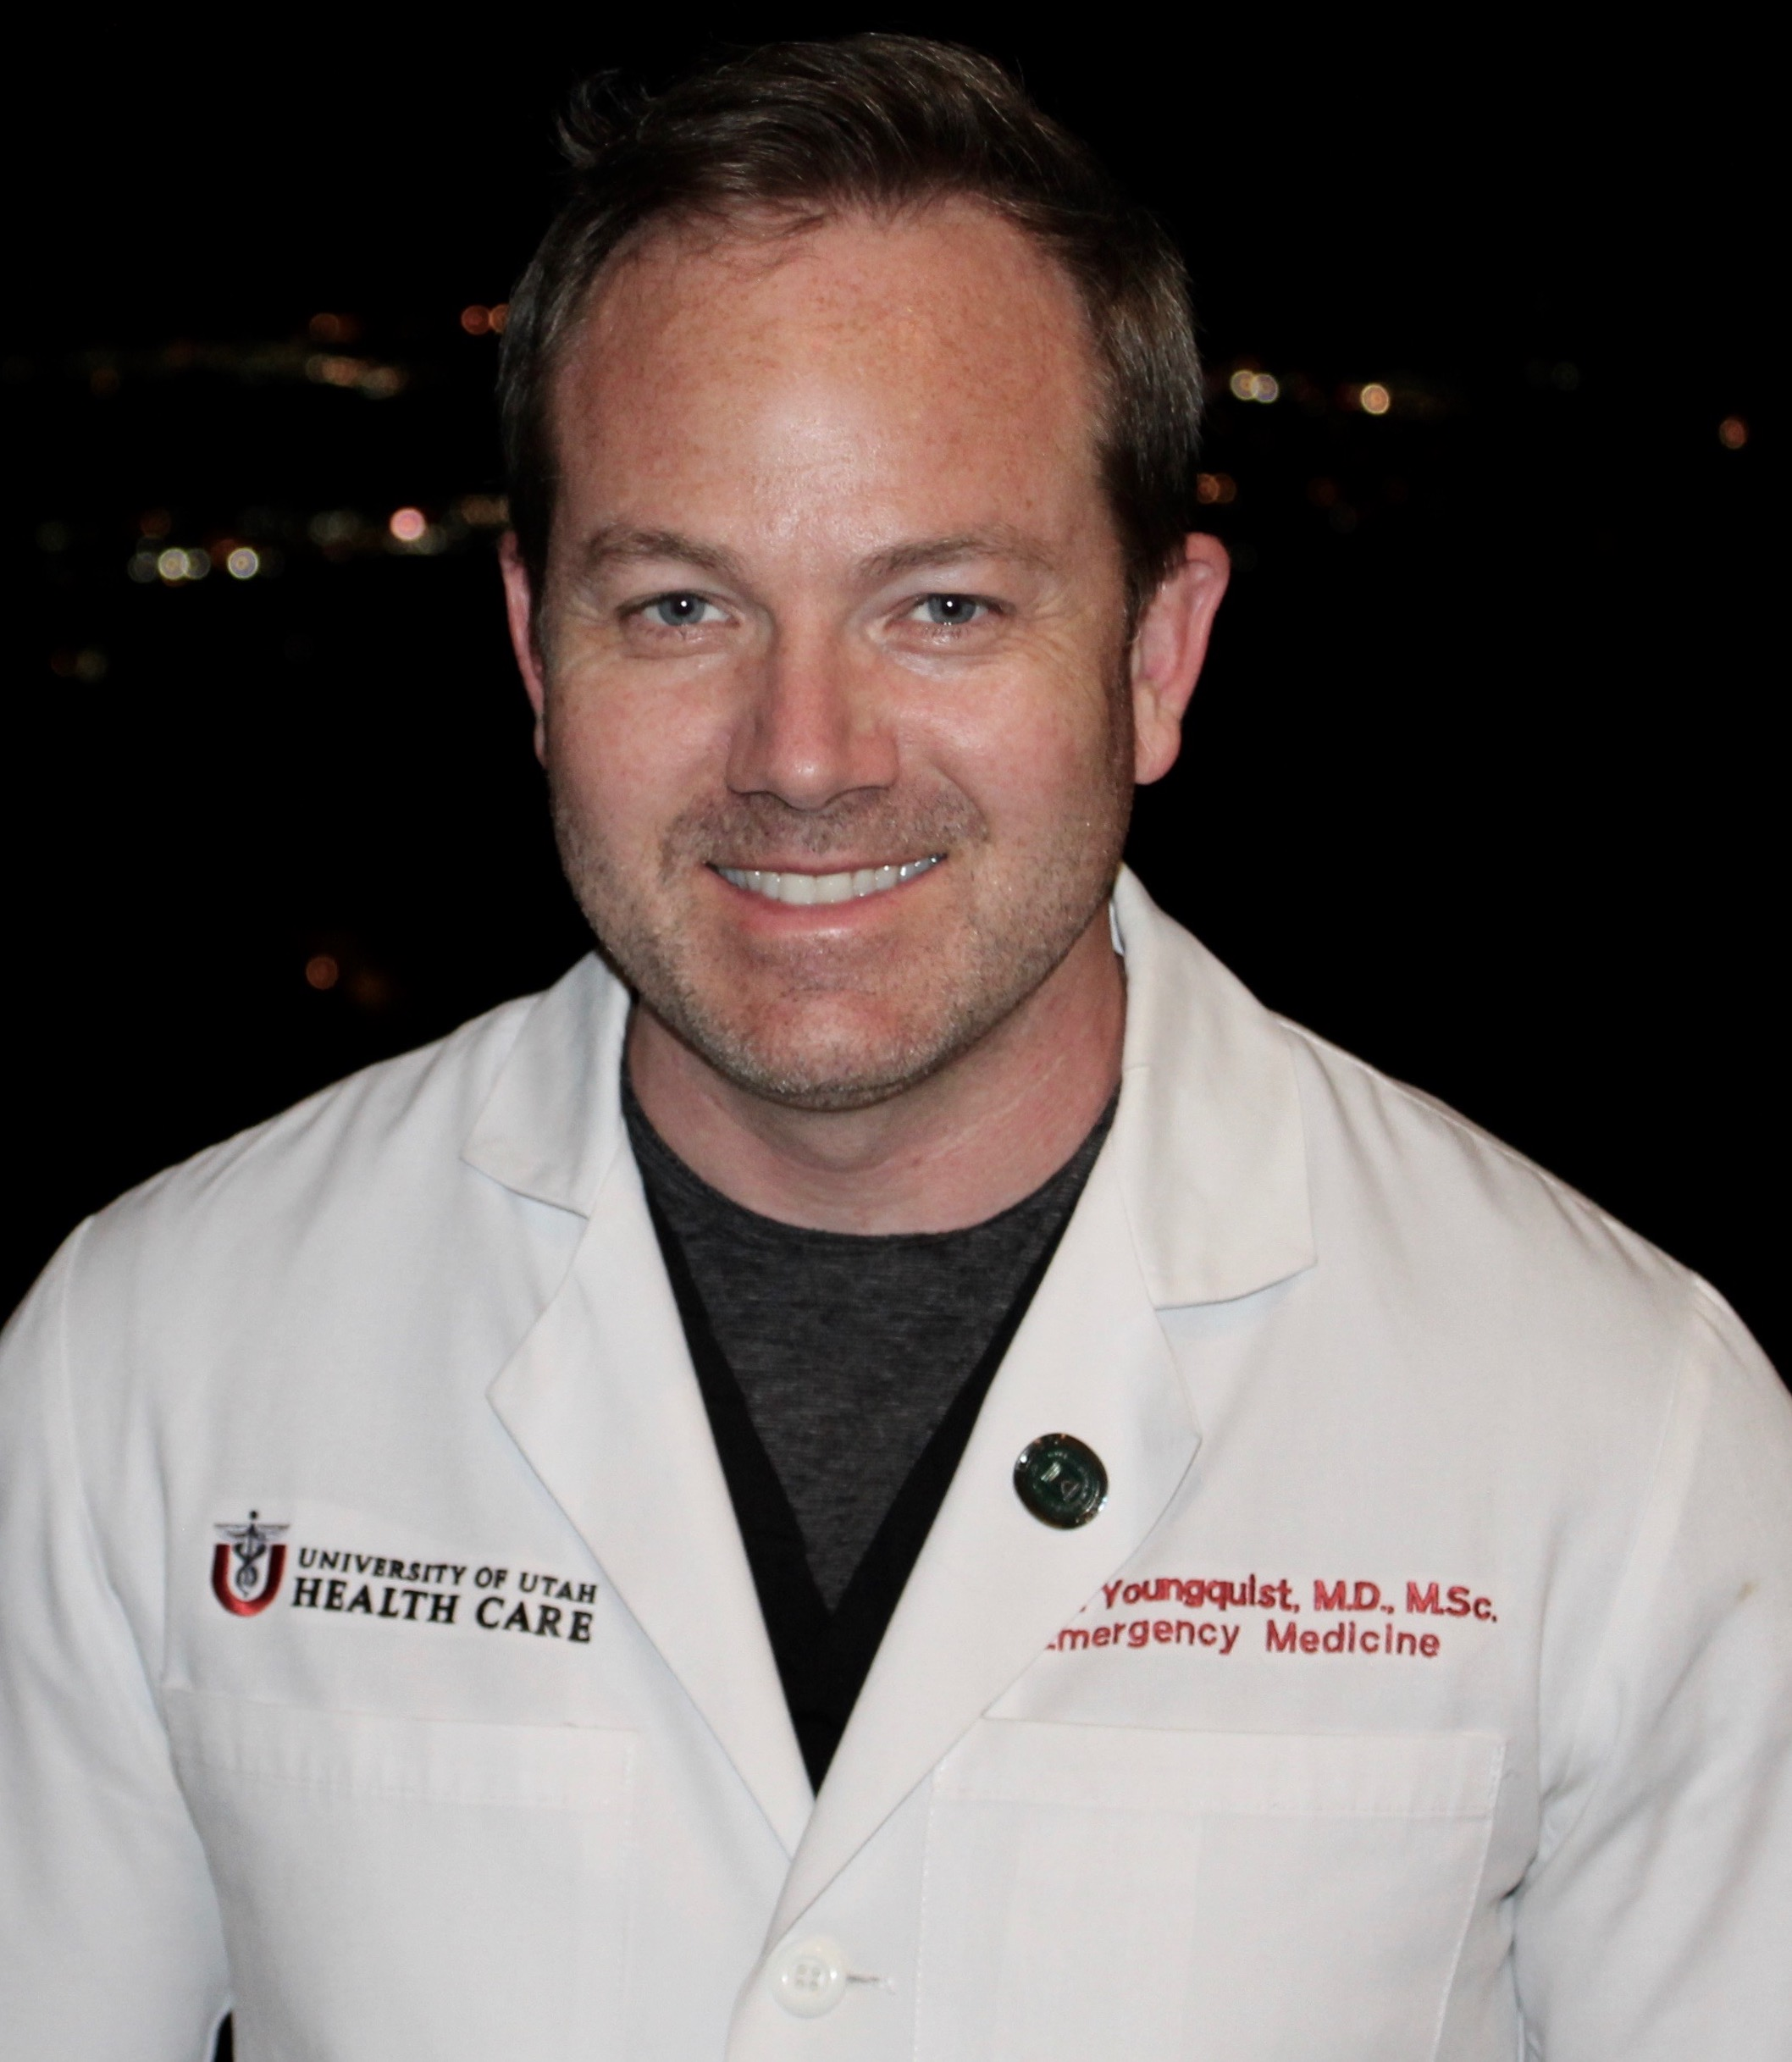 Scott T. Youngquist, MD, MS, FACEP, FAEMS